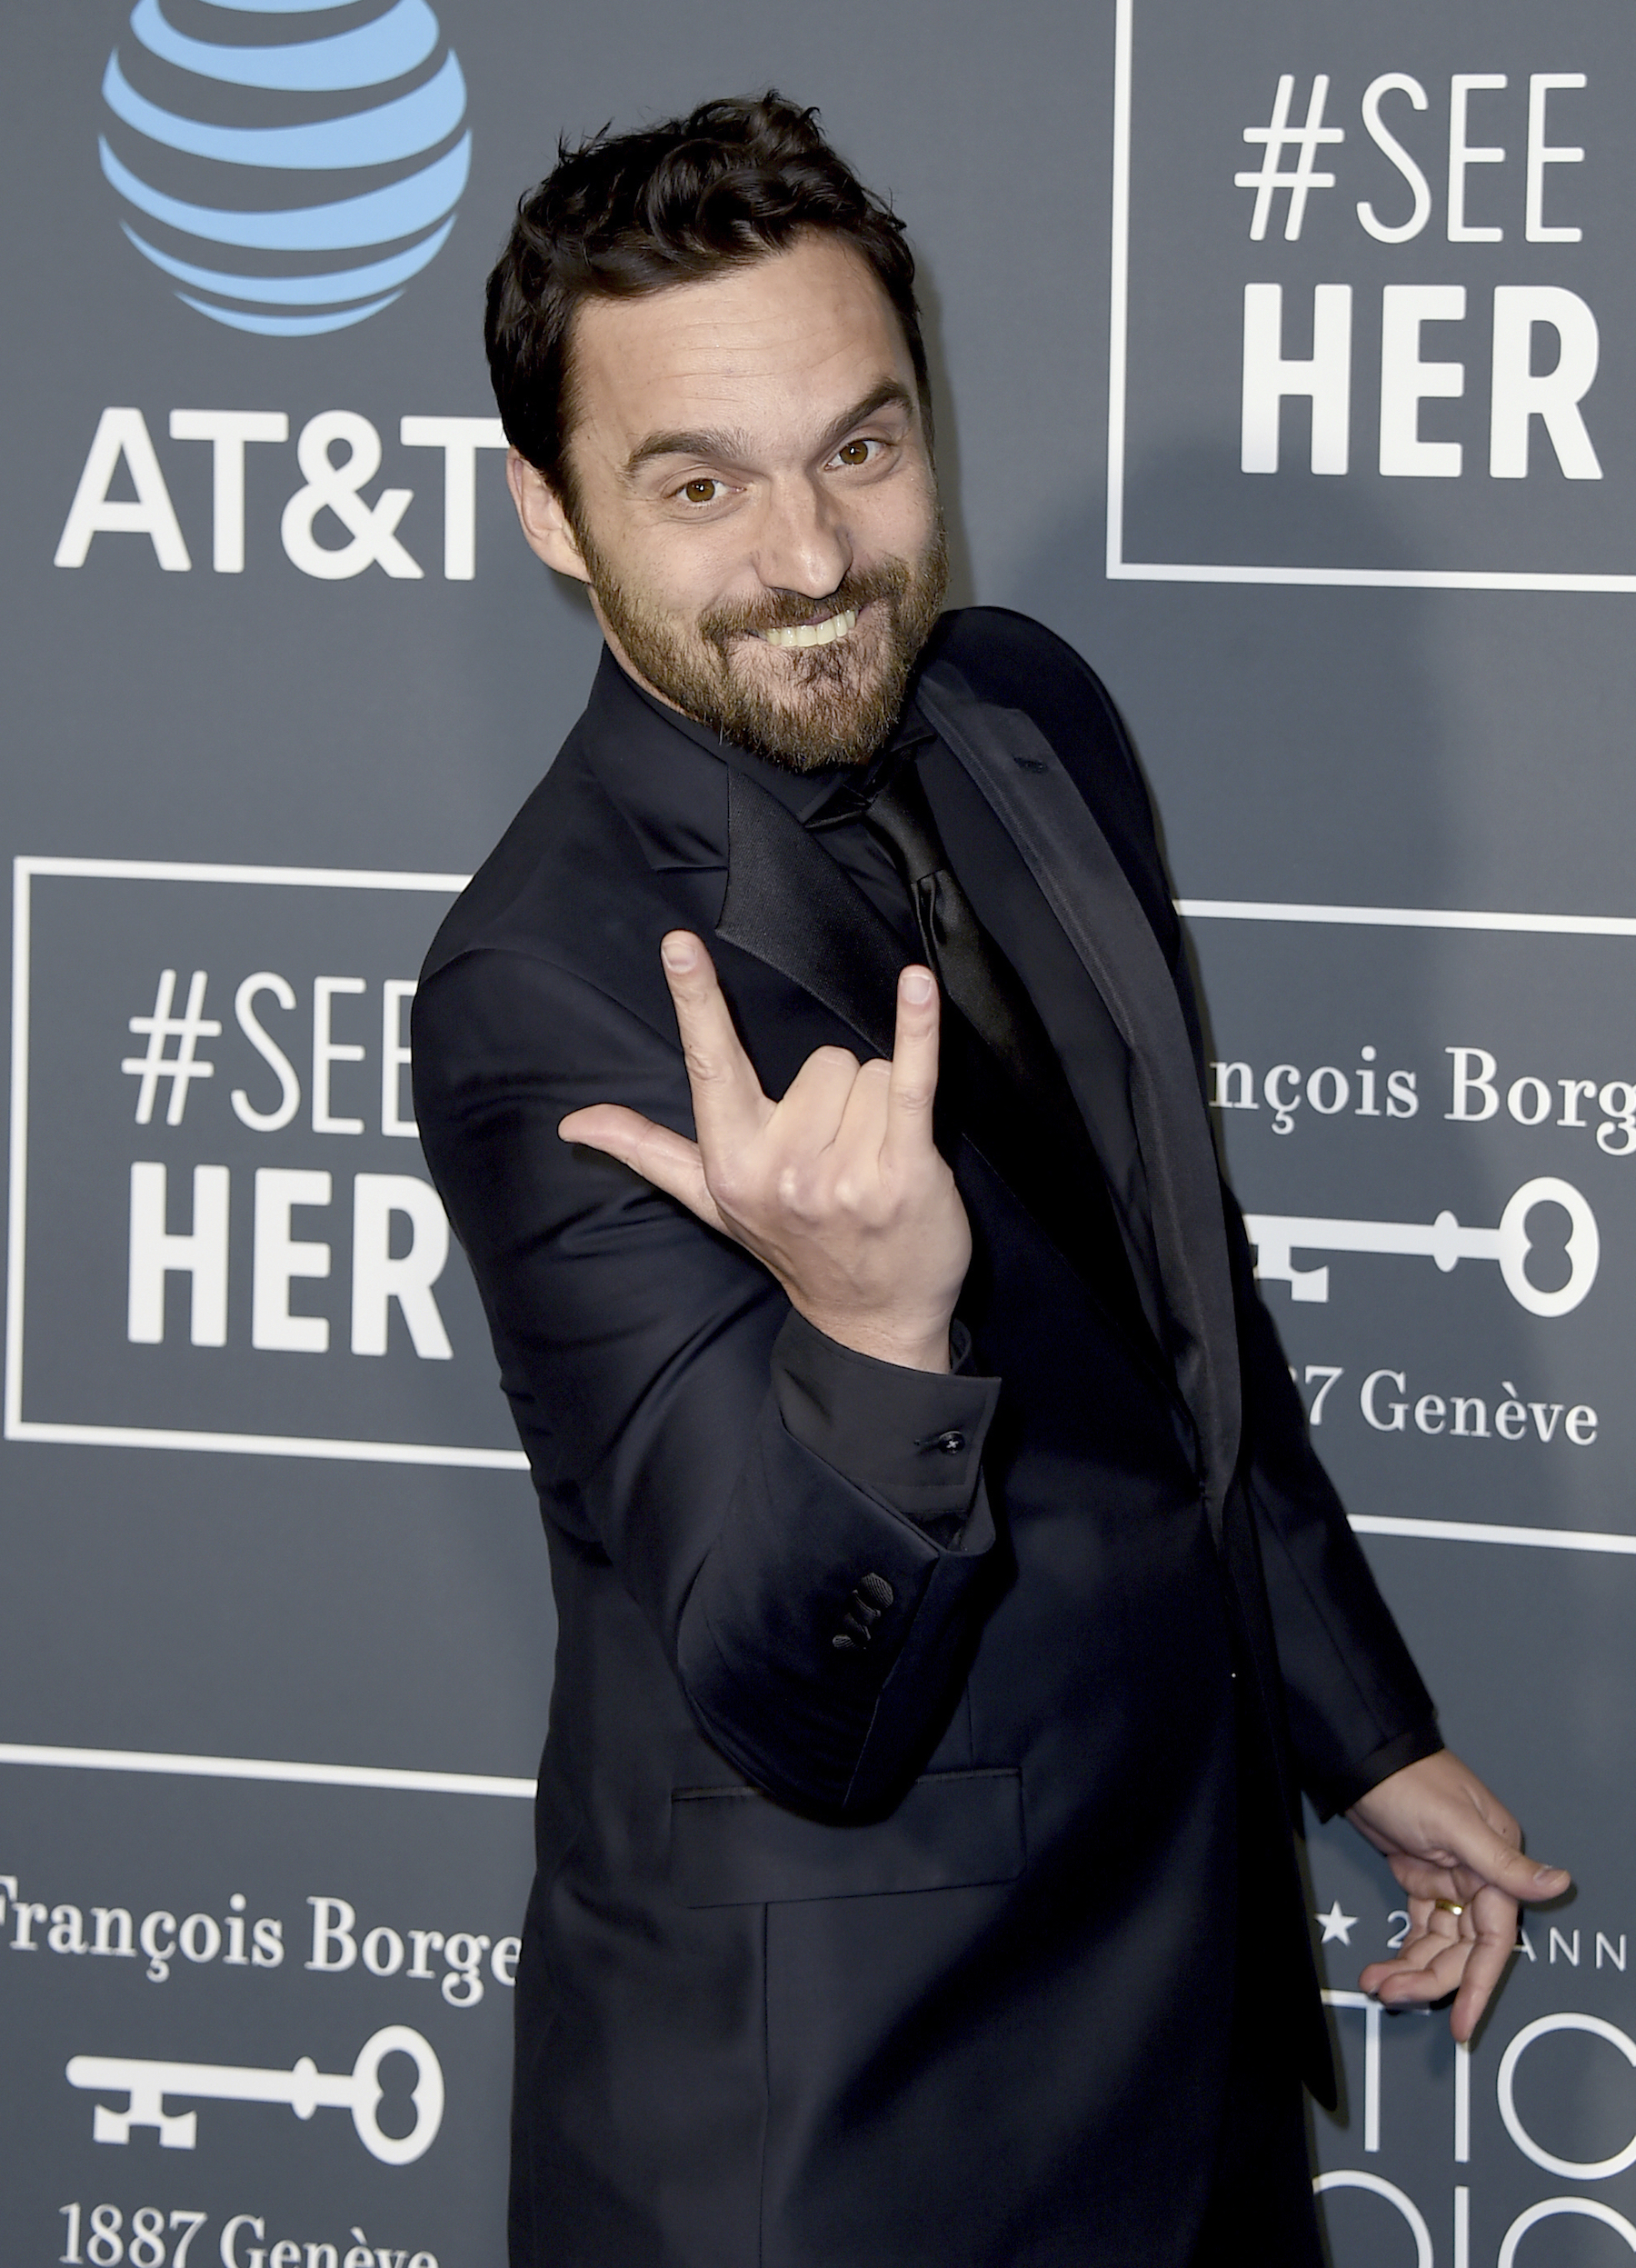 <div class='meta'><div class='origin-logo' data-origin='AP'></div><span class='caption-text' data-credit='Jordan Strauss/Invision/AP'>Jake Johnson arrives at the 24th annual Critics' Choice Awards on Sunday, Jan. 13, 2019, at the Barker Hangar in Santa Monica, Calif.</span></div>